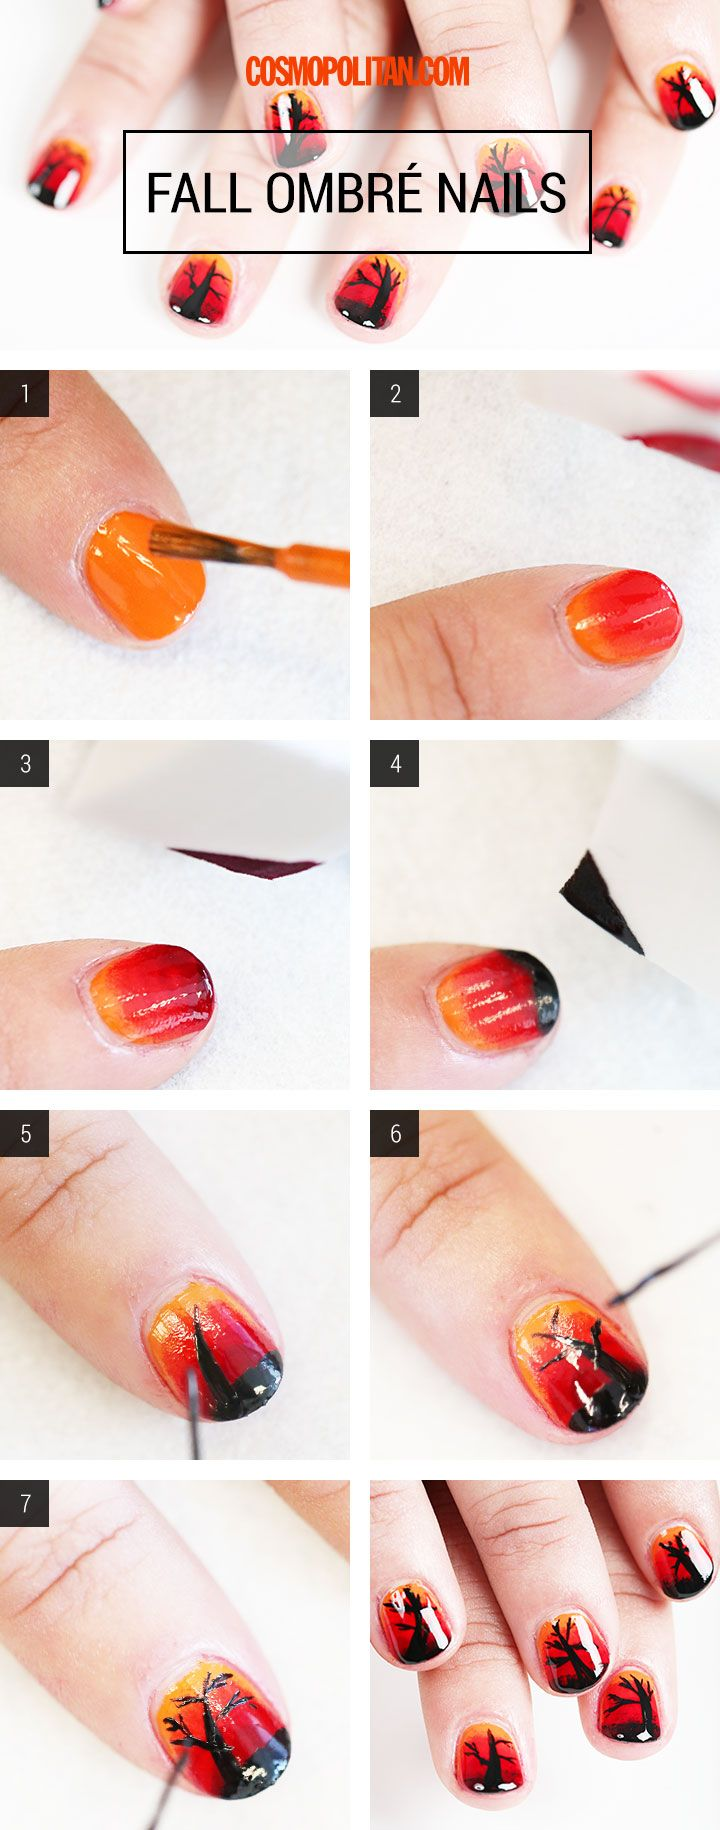 Nail Art How-To: Fall Ombré Nails | Ombre, Art tutorials and ...